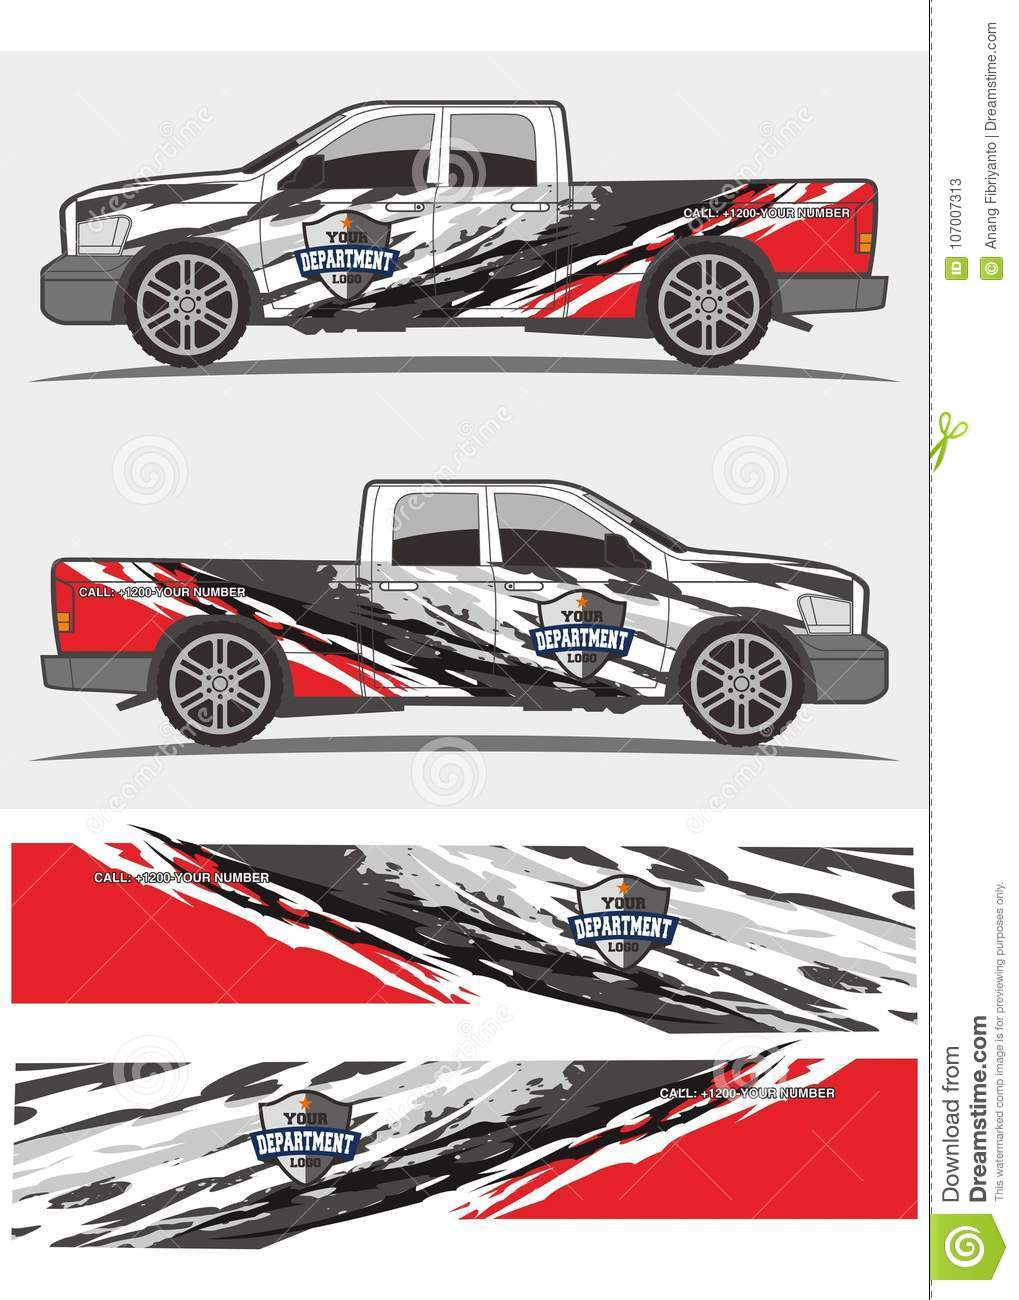 Professional graphics design decal kits for van vehicle and truckntruck and vehicle decal graphics kits design tribal graphics kits for truck and other